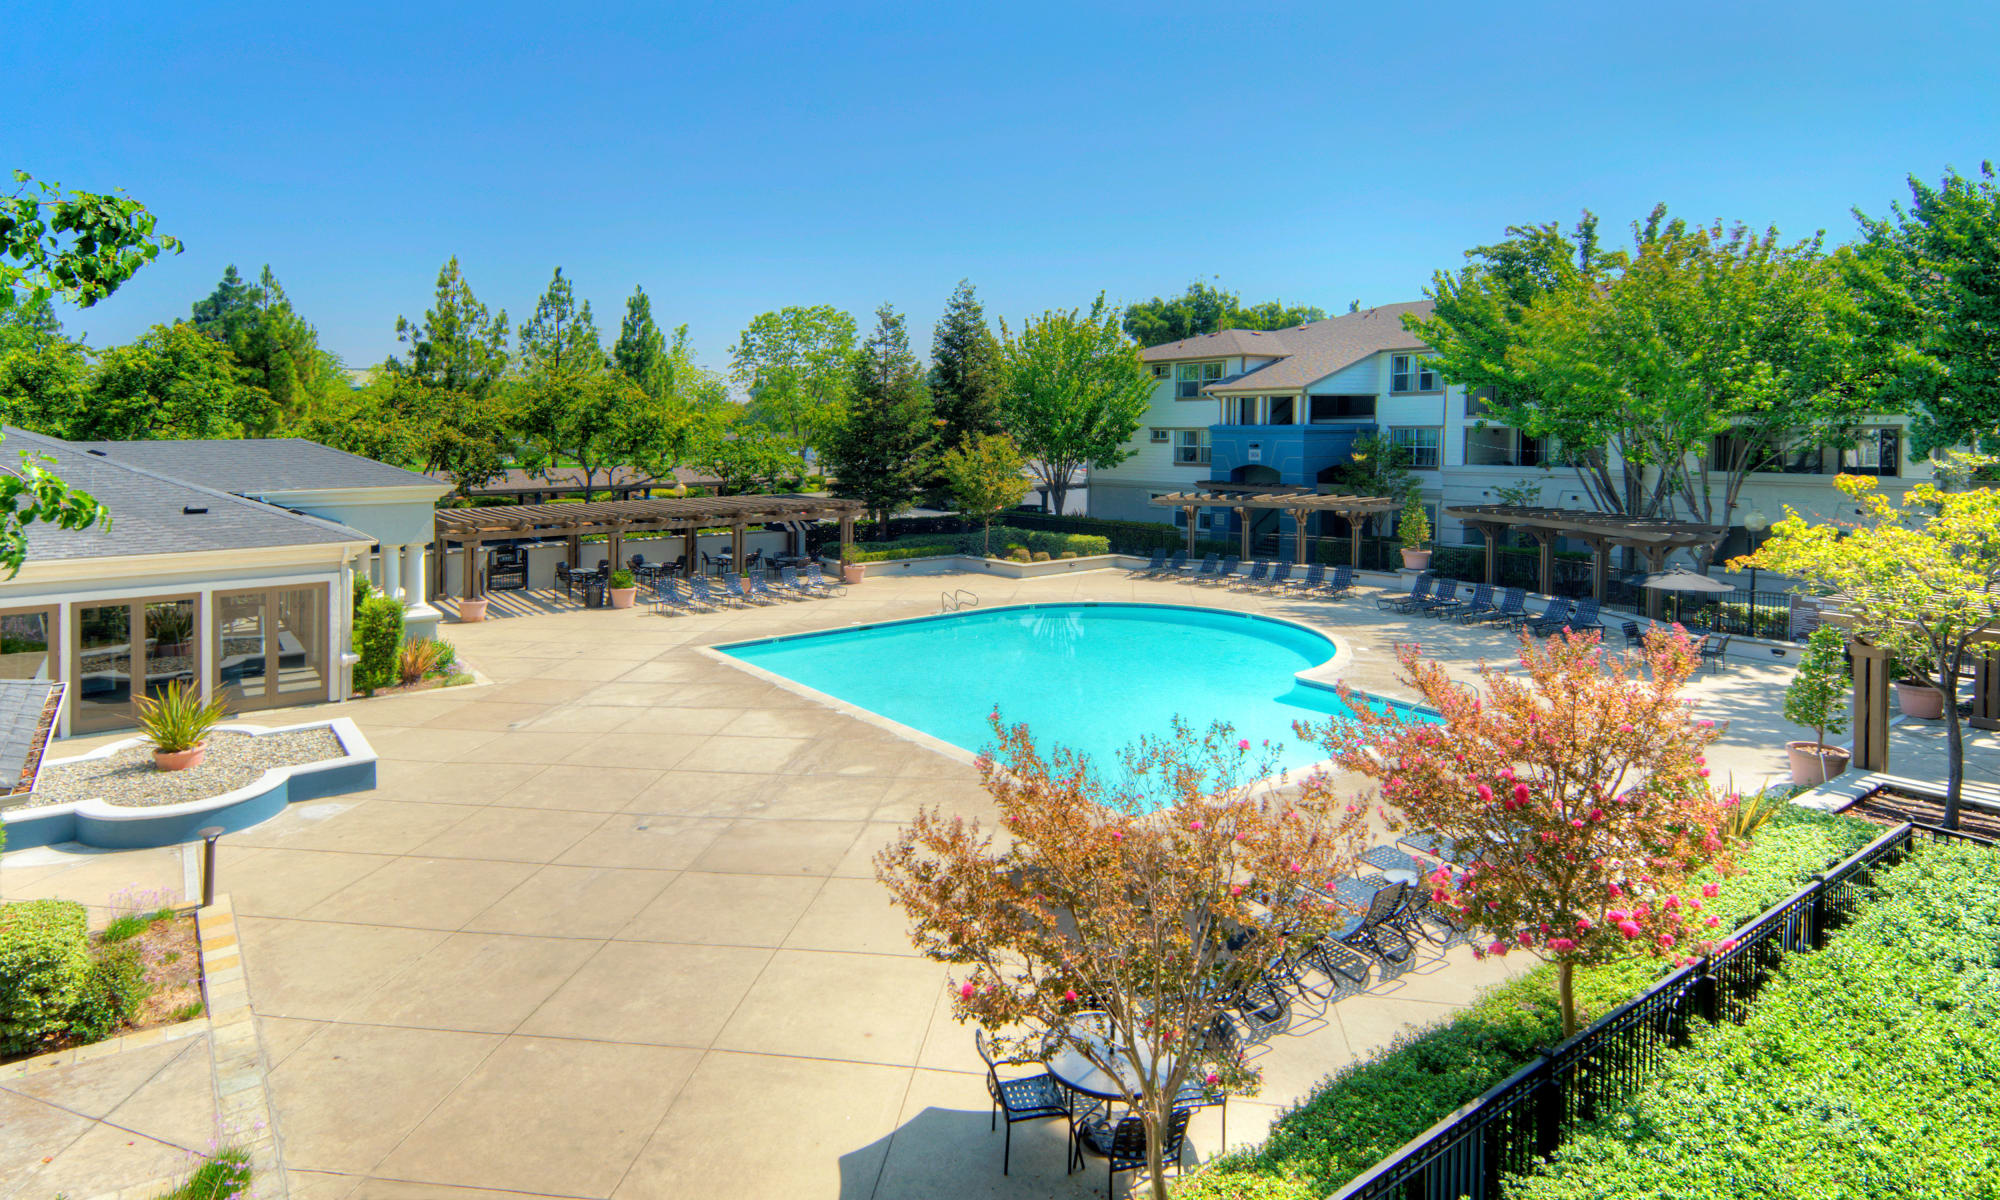 Park Hacienda Apartments is a pet friendly community in Pleasanton, California